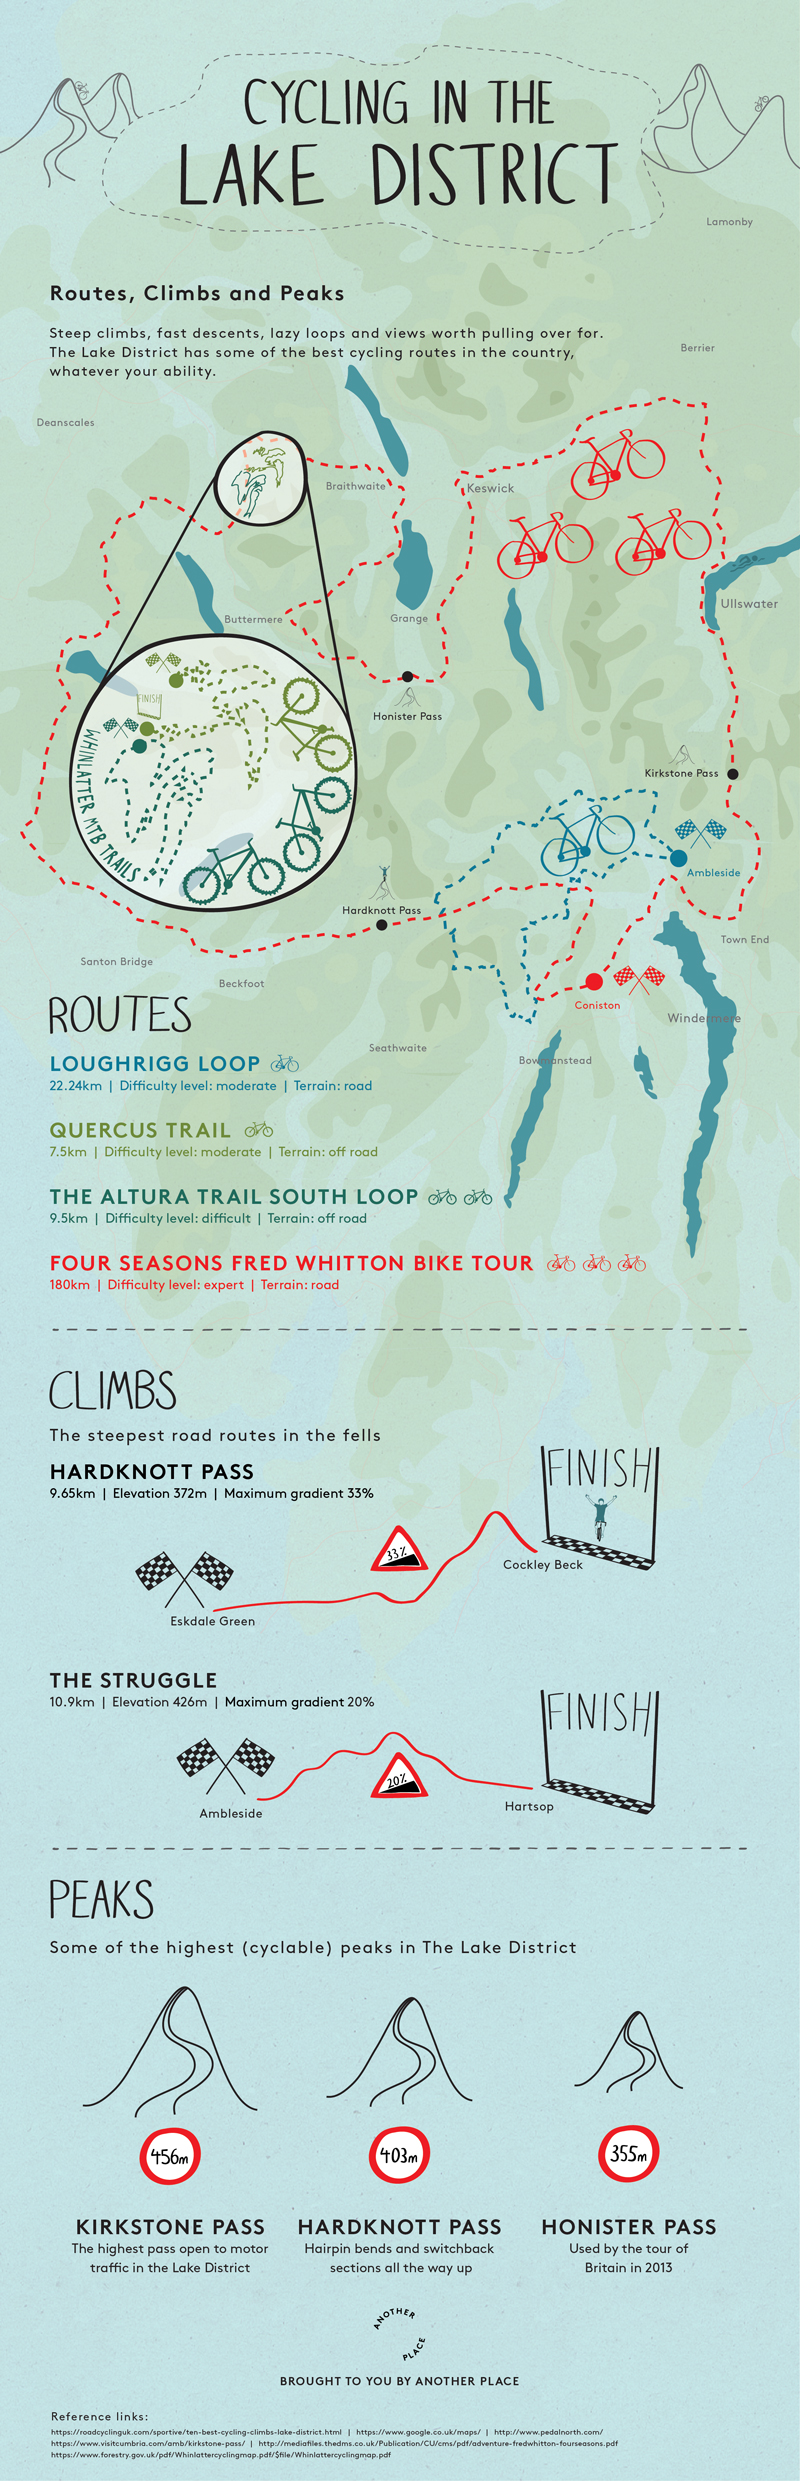 A-visual-guide-to-cycling-in-the-Lake-District-Another-Place-Hotels.jpg